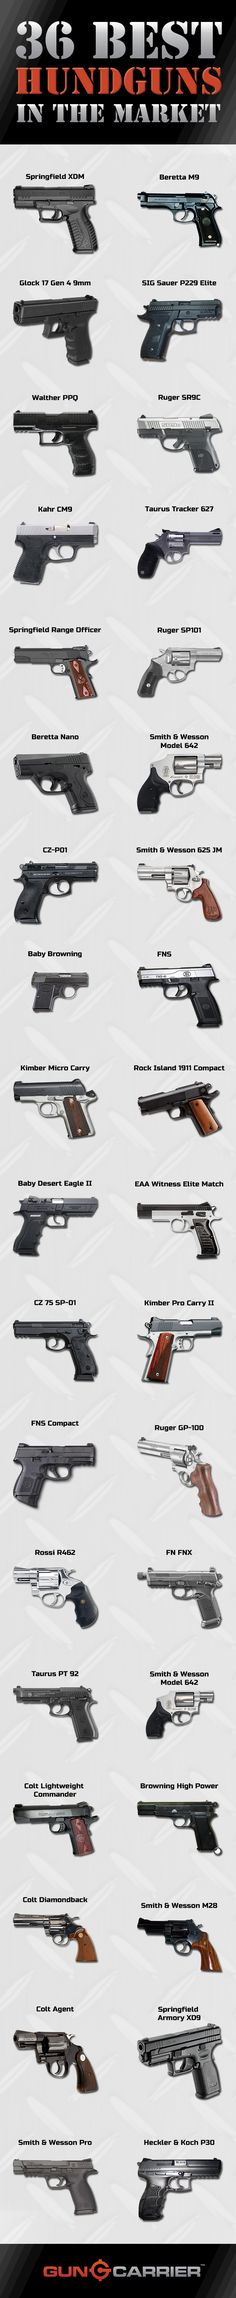 36 Best Handguns In The Market | Best Guns for Survival